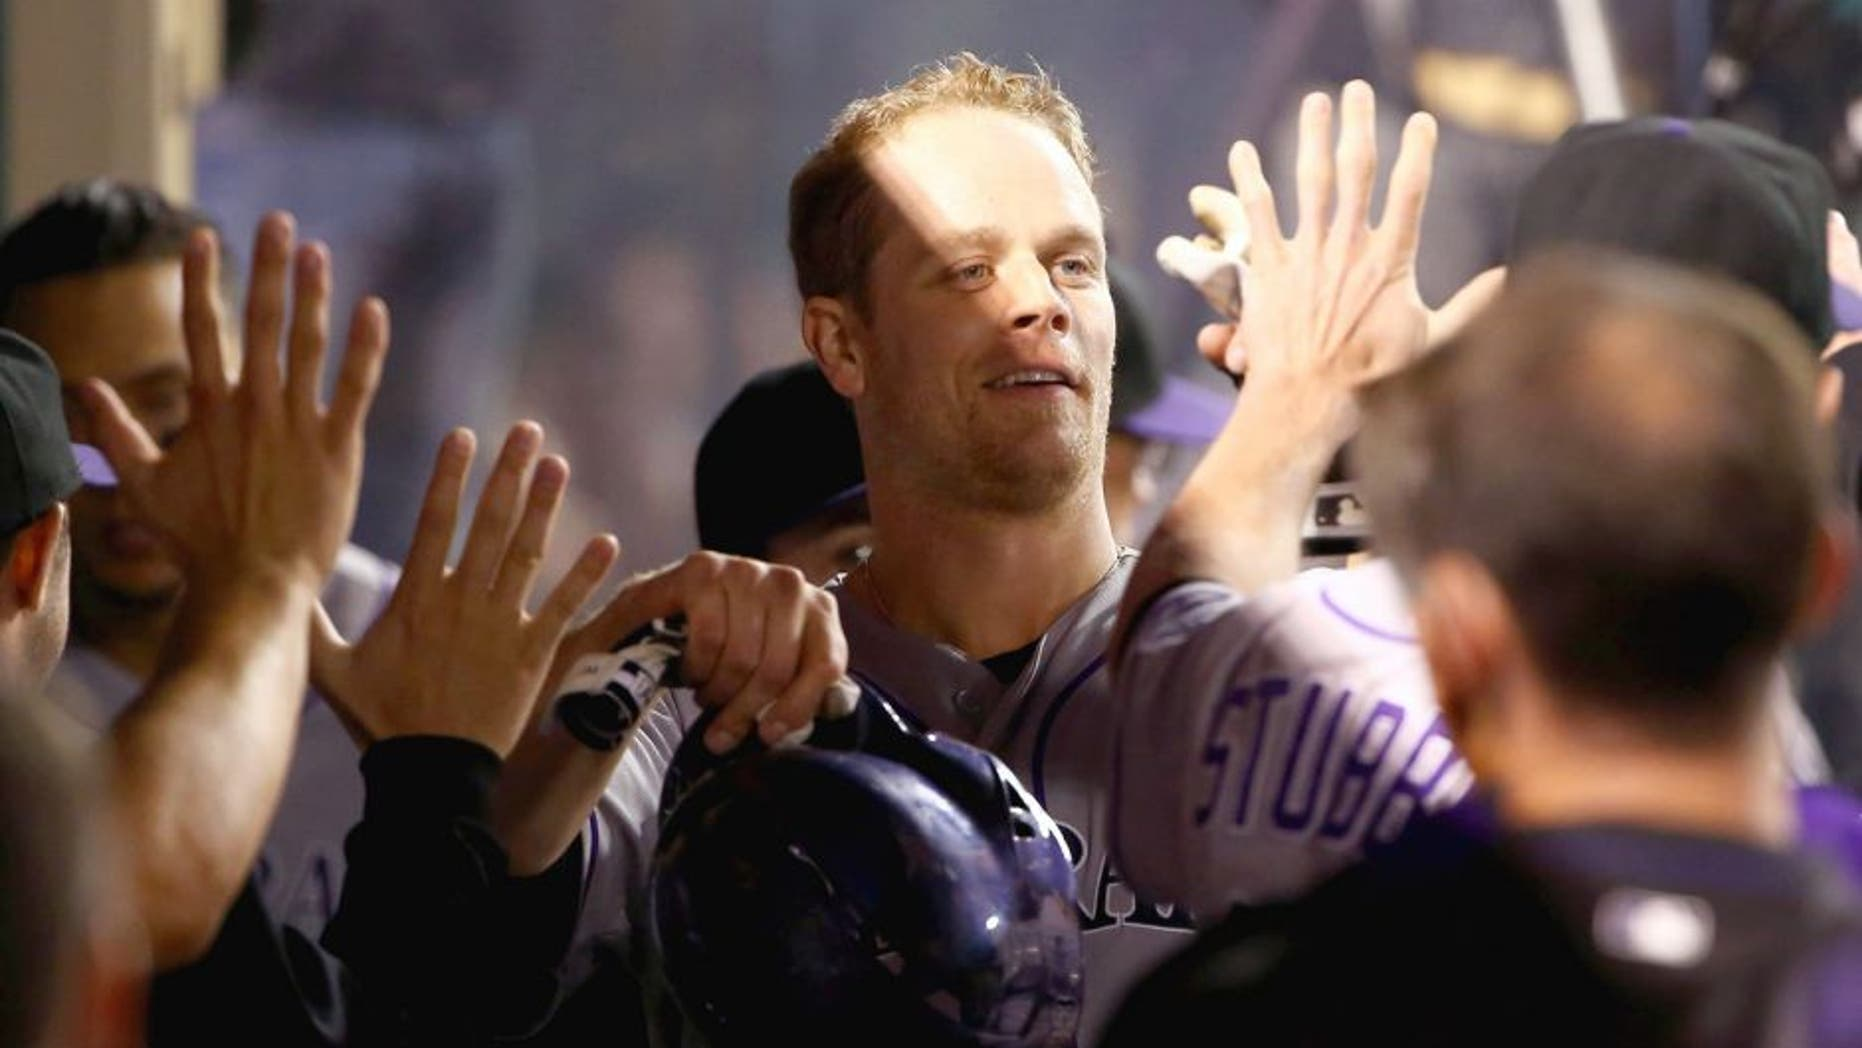 ANAHEIM, CA - MAY 12: Justin Morneau #33 of the Colorado Rockies celebrates in the dugout after scoring on Corey Dickerson's rbi double to deep right field in the fourth inning during the MLB game against the Los Angeles Angels of Anaheim at Angel Stadium of Anaheim on May 12, 2015 in Anaheim, California. The Angels defeated the Rockies 5-2. (Photo by Victor Decolongon/Getty Images)